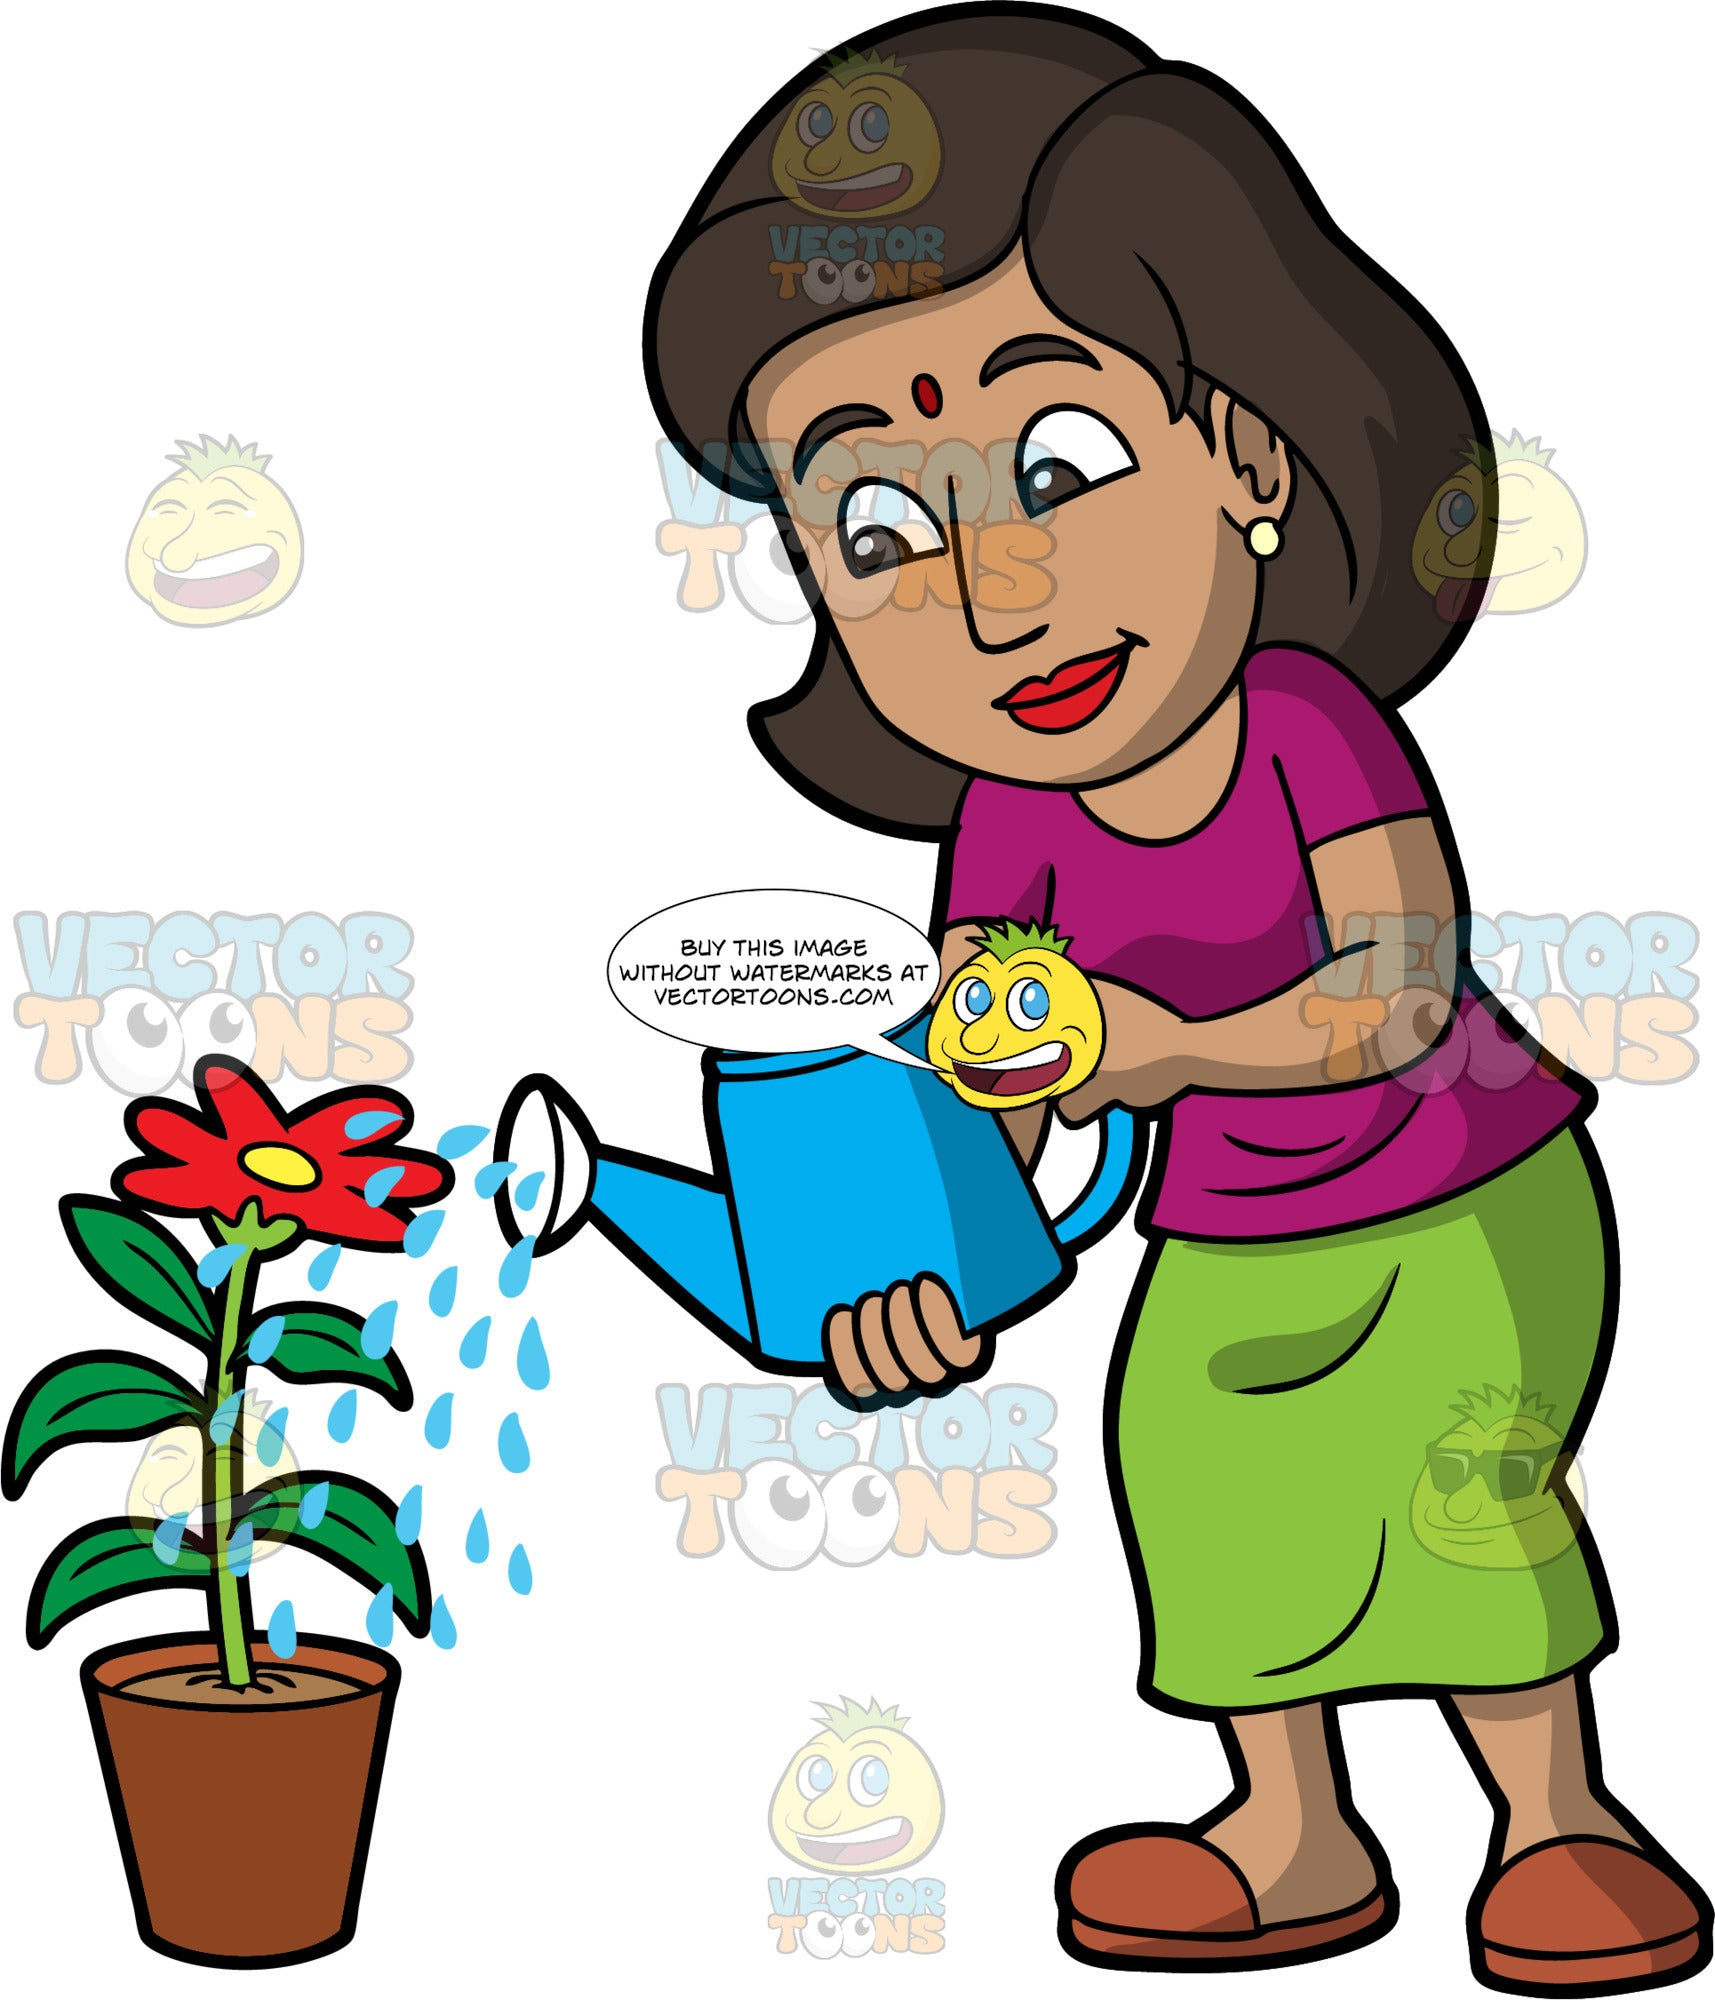 An Indian woman water a potted flower. An Indian with dark brown hair, wearing a long green skirt, a purple shirt, and brown slip on shoes, uses a blue watering can to water a red flower in a pot